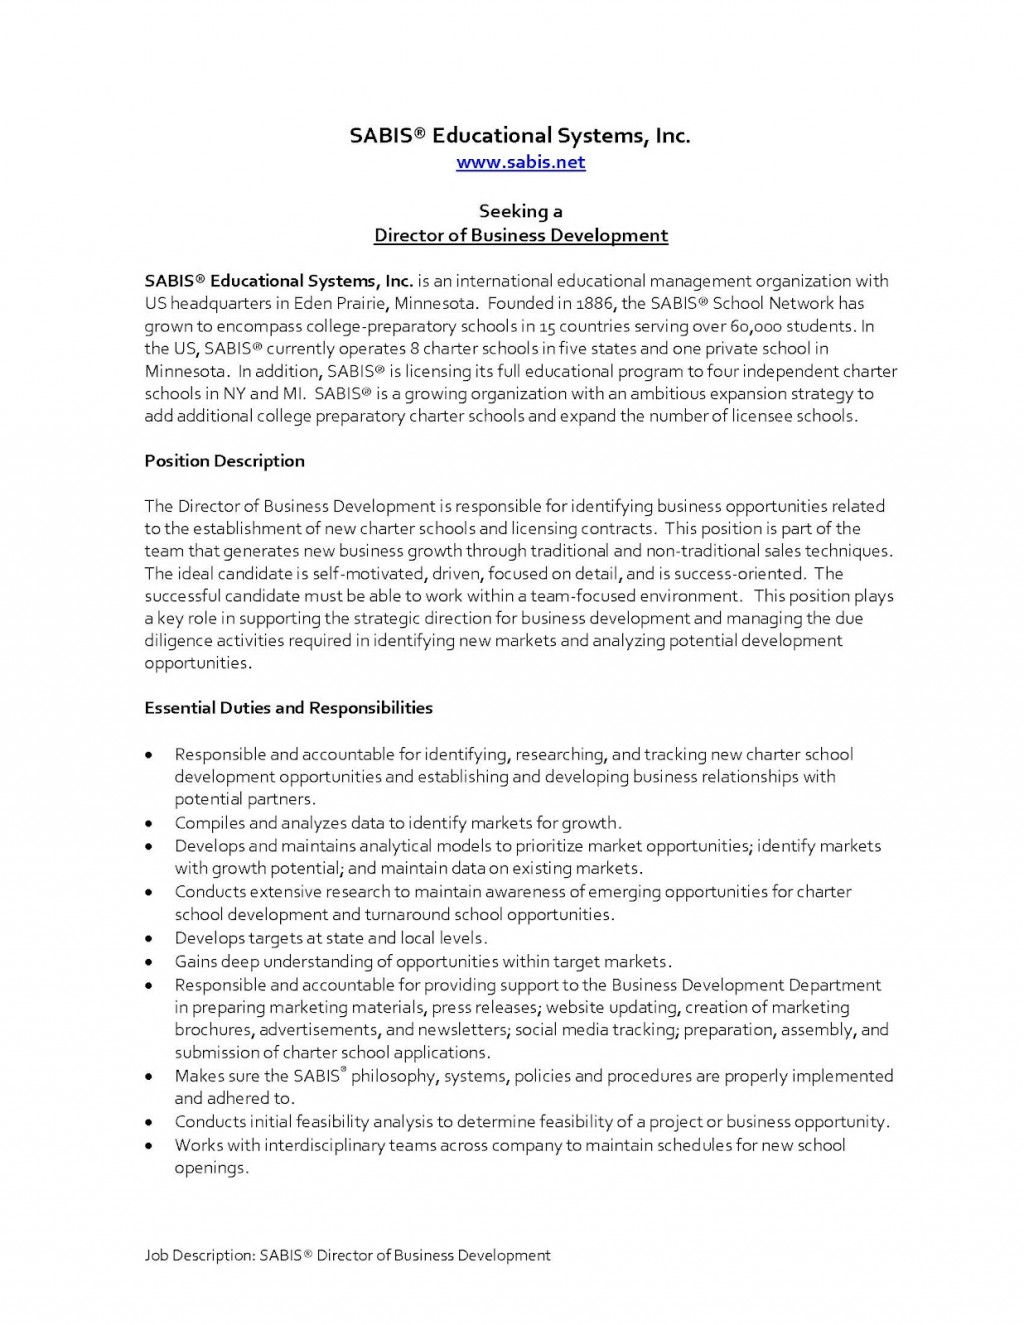 010 Essay Example Literary Criticism Director20business20development20job20description Page 1 Excellent On The Great Gatsby Ideas Conclusion Sample Large